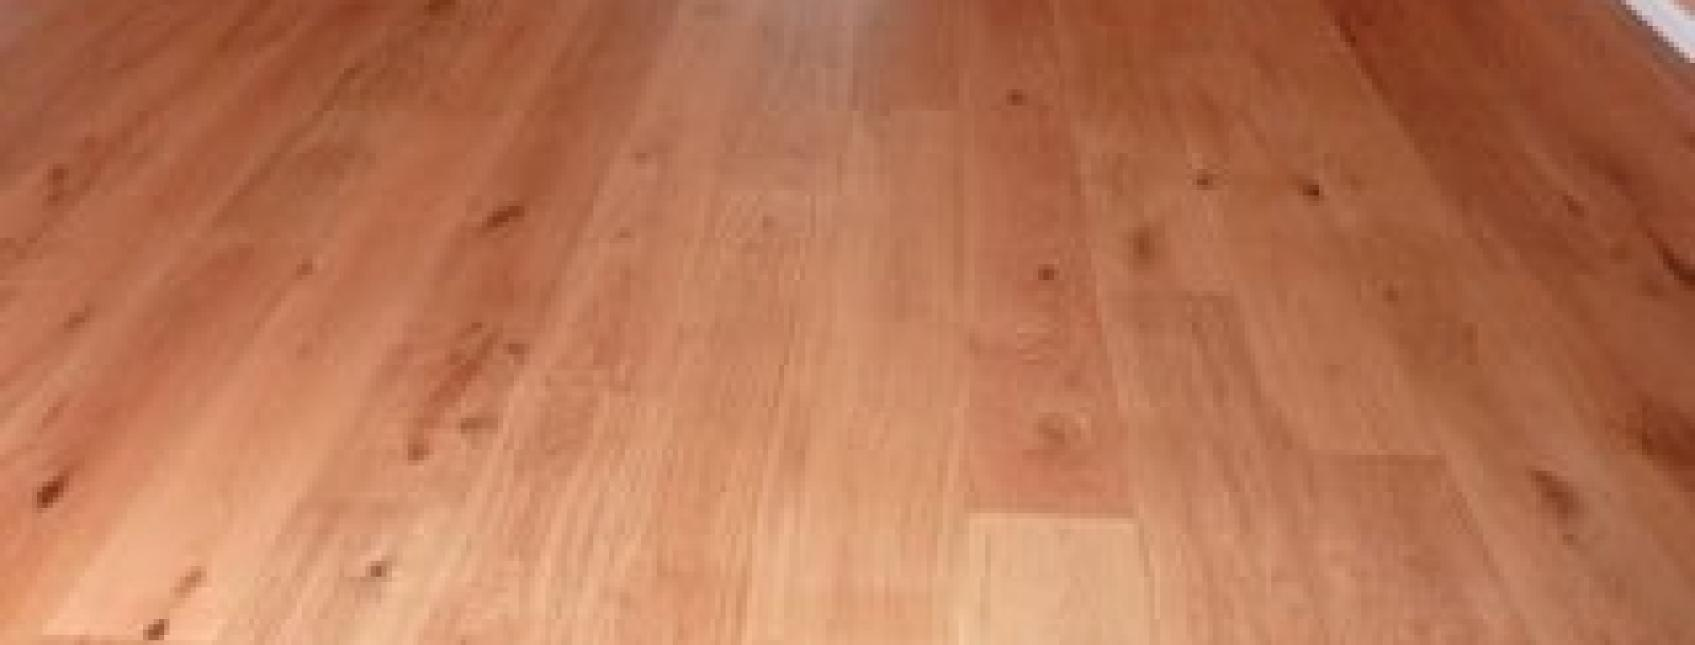 220mm supreme engineered oak flooring